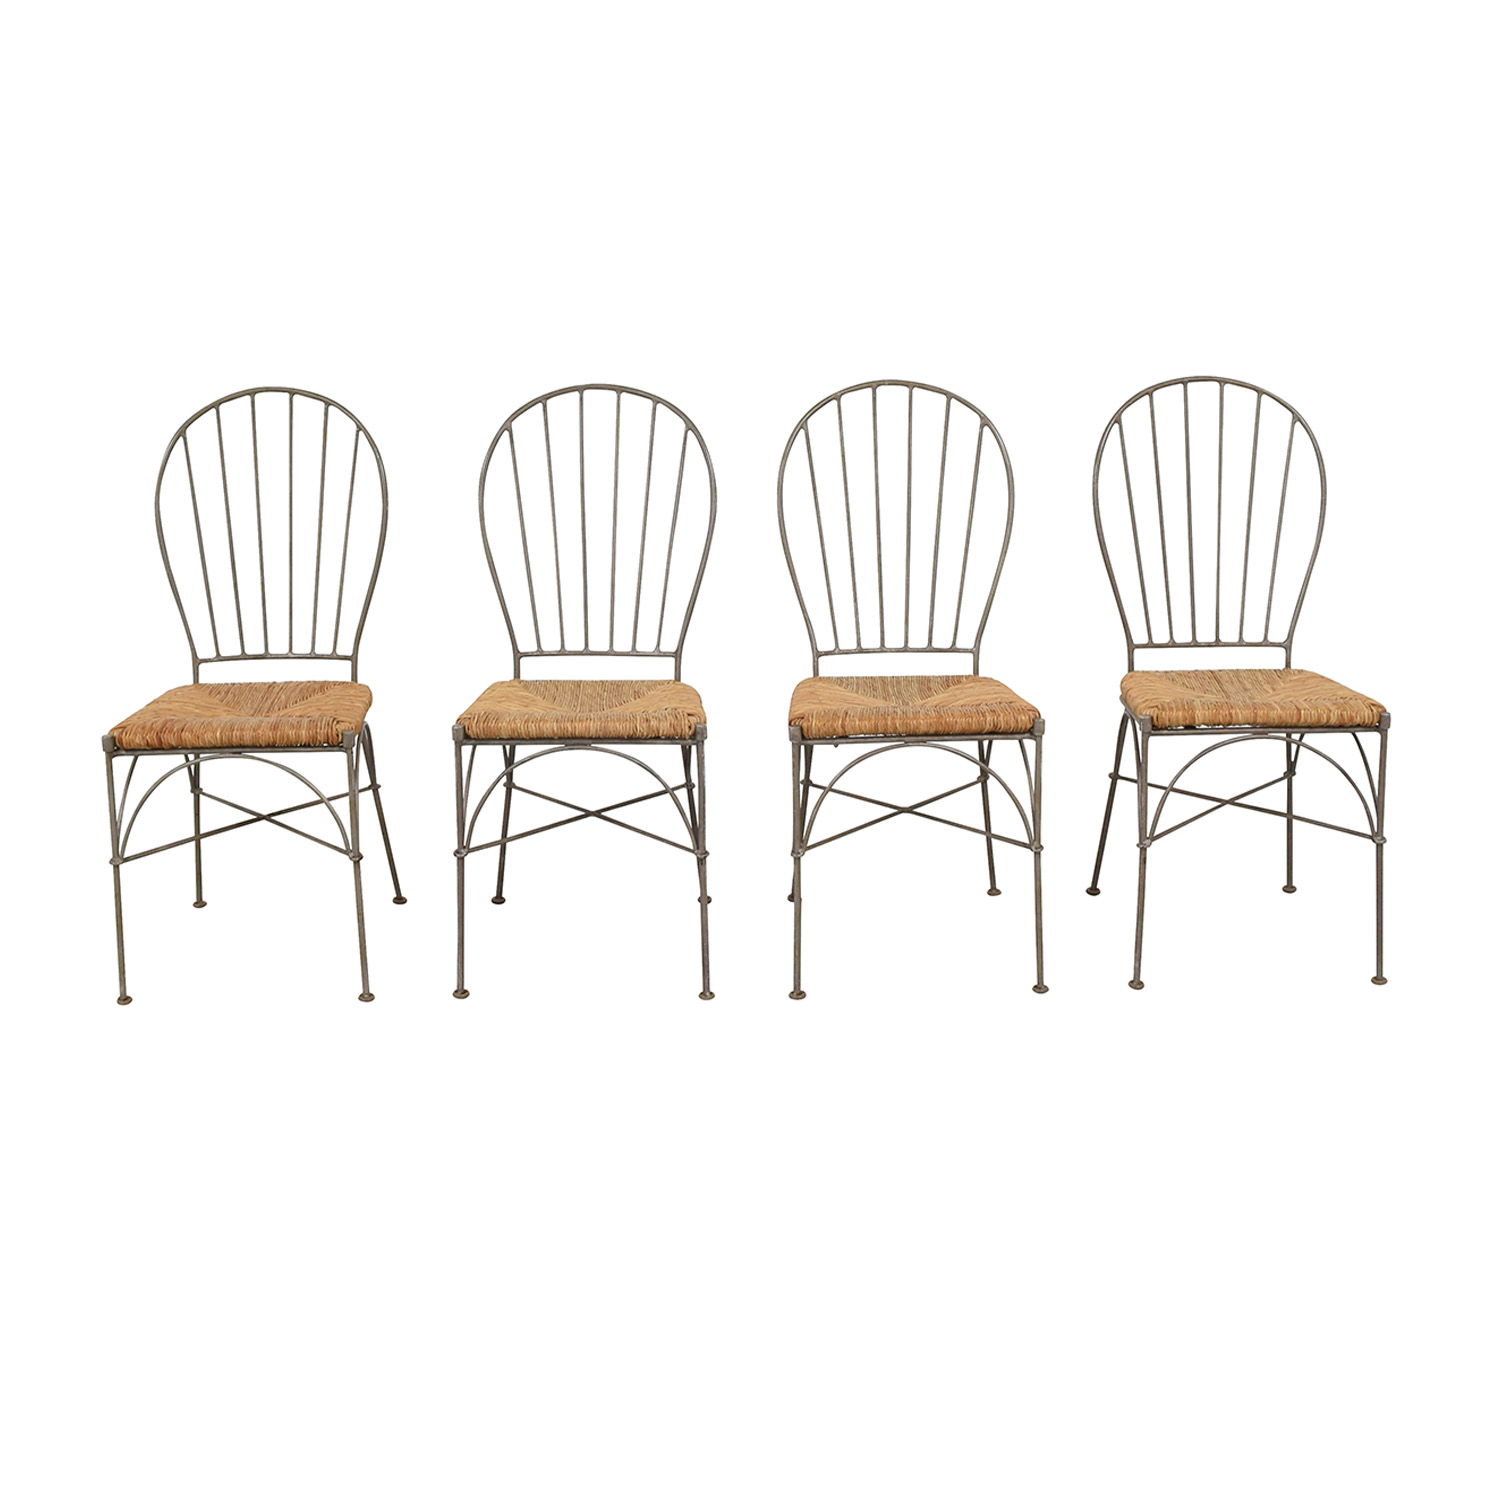 Pier 1 Pier 1 Woven Seat Dining Chairs dimensions